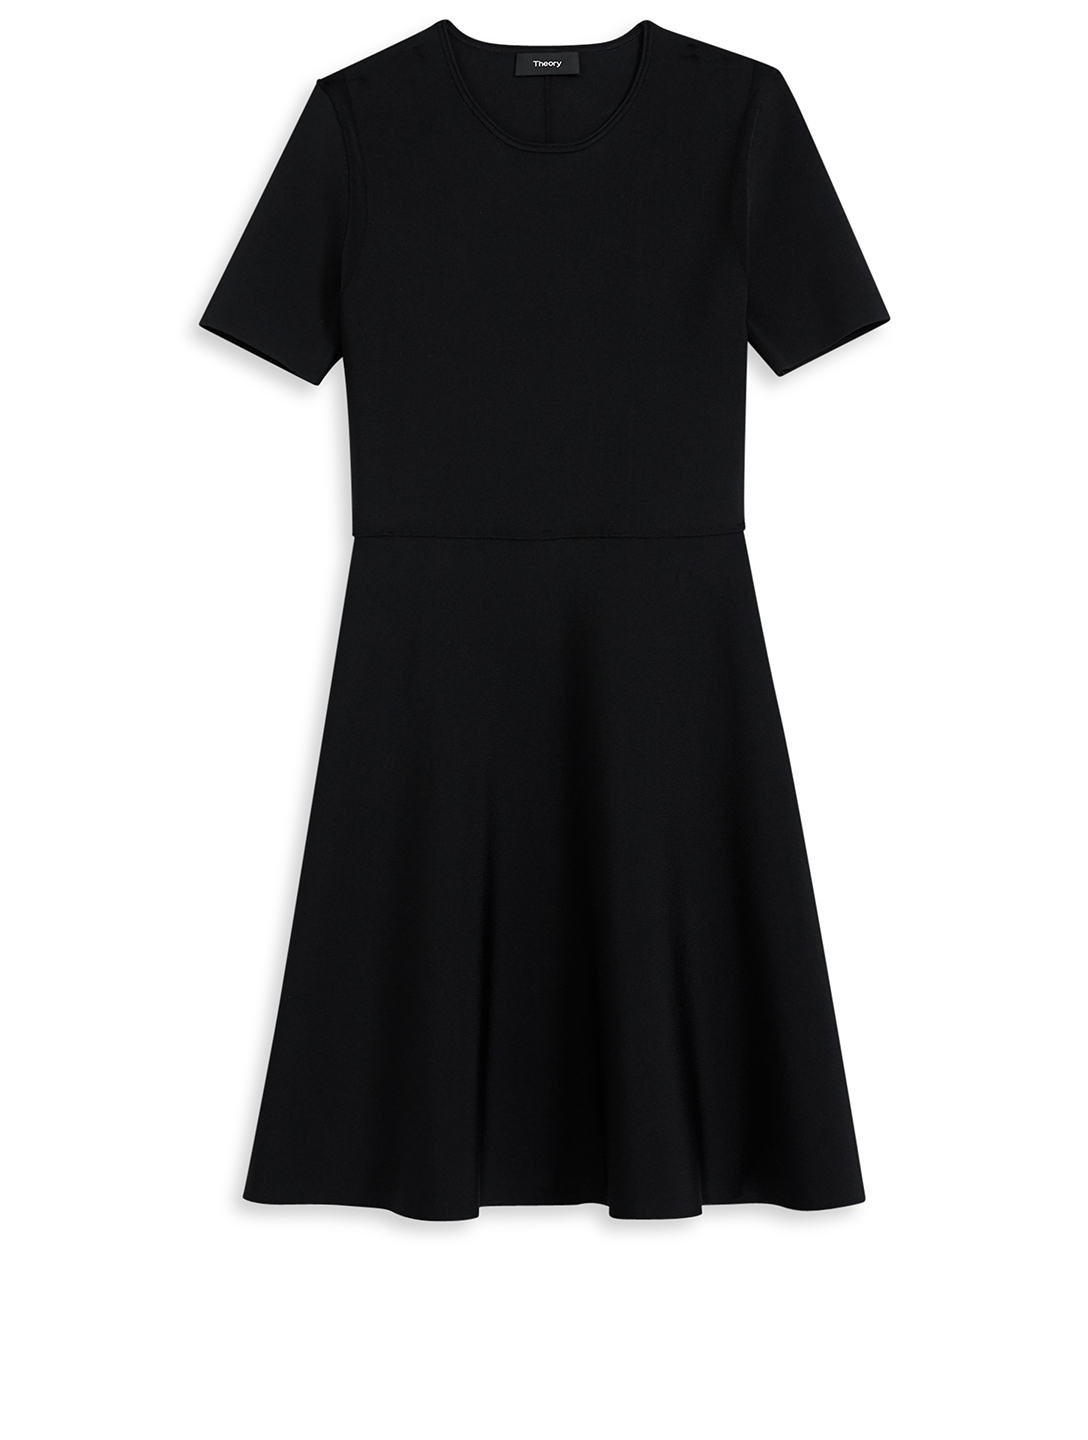 THEORY Short-Sleeve Knit Dress Women's Black